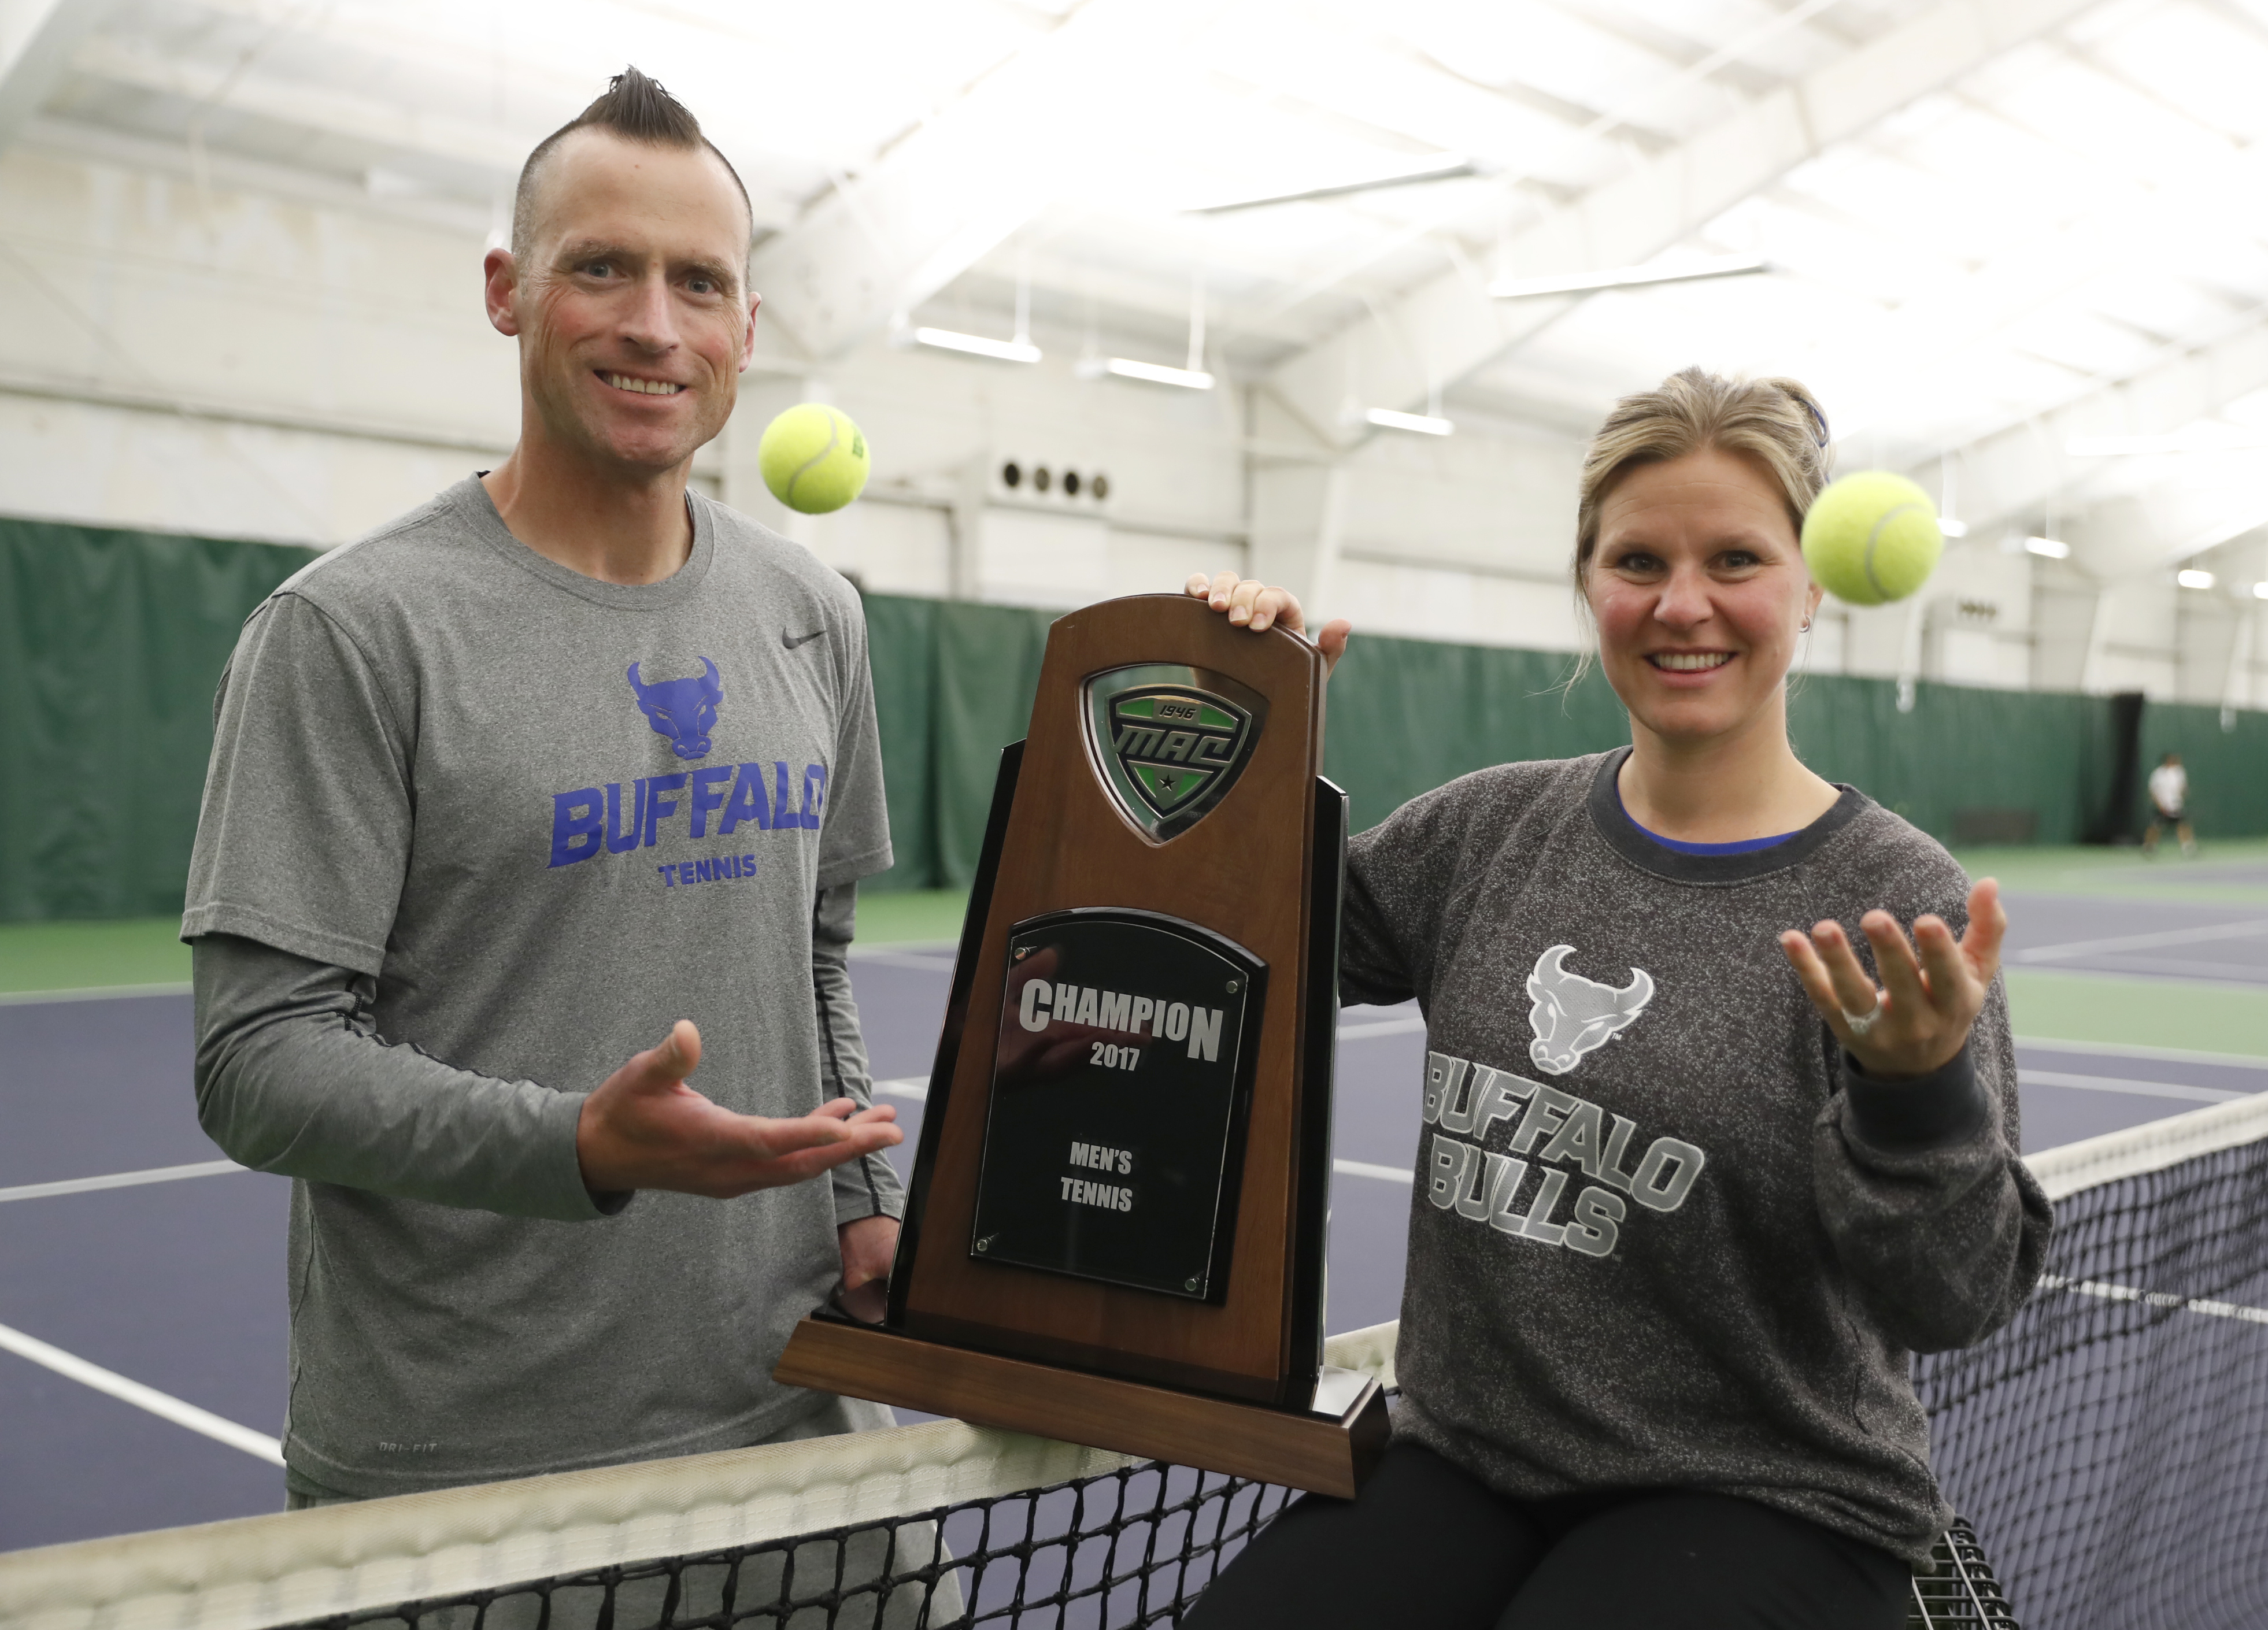 University at Buffalo tennis coaches Lee Nickell (men) and Kristen Maines (women) both have their teams headed to the NCAAs. (Harry Scull Jr./Buffalo News)